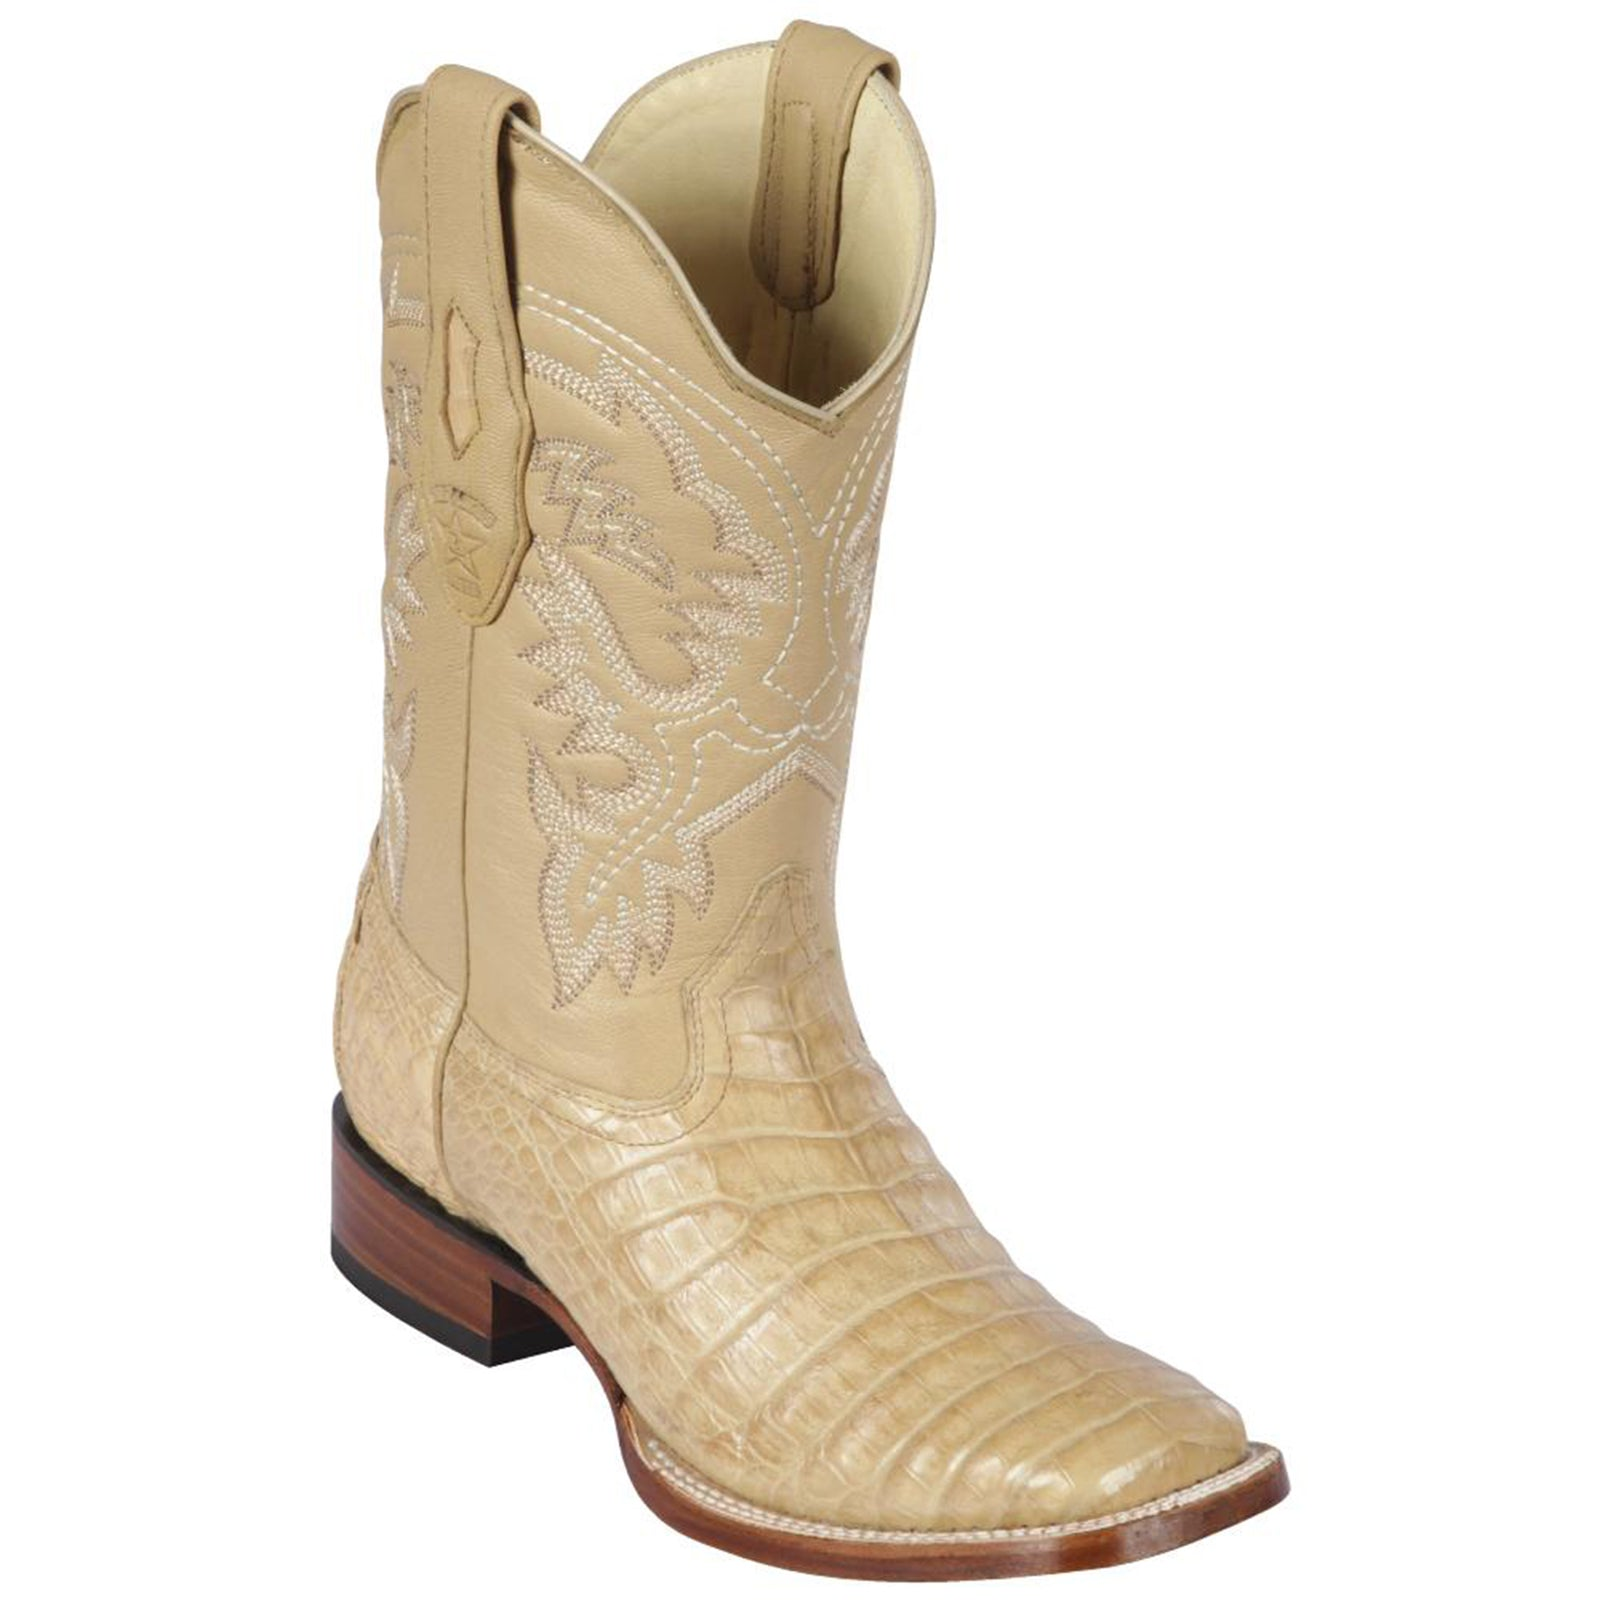 Los Altos Caiman Belly Sand Square Toe Boots